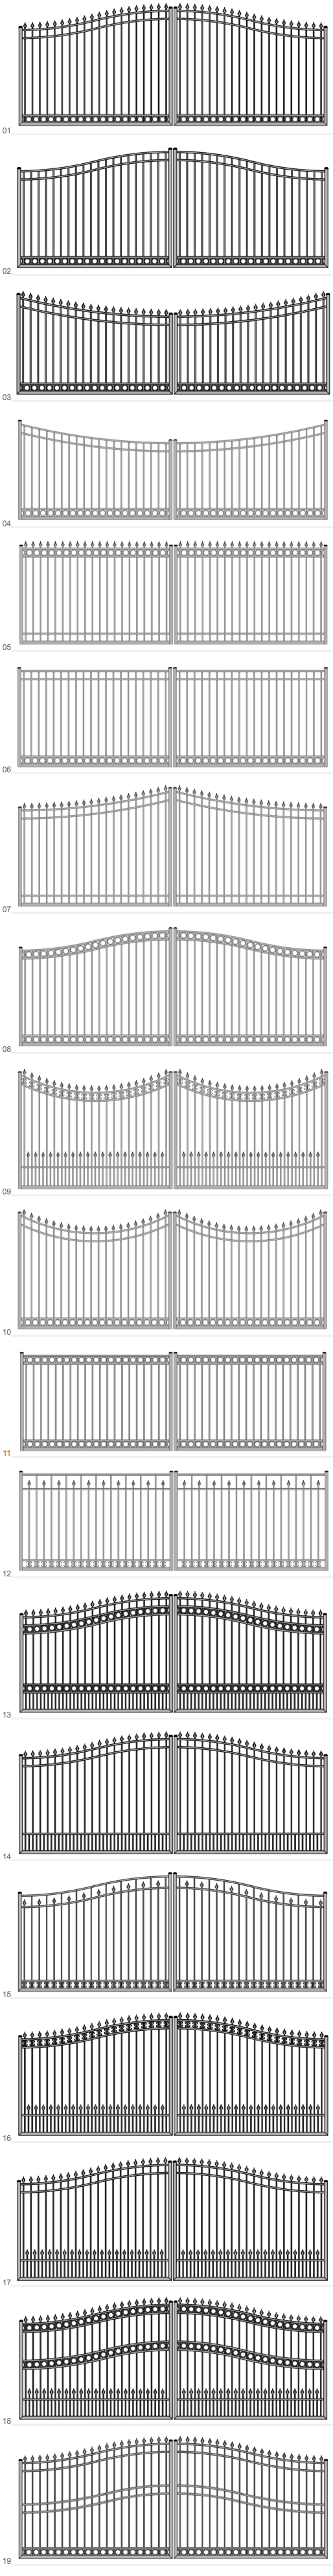 Handy Gates  Grilles - Gate Designs  Handy Gates  Grilles